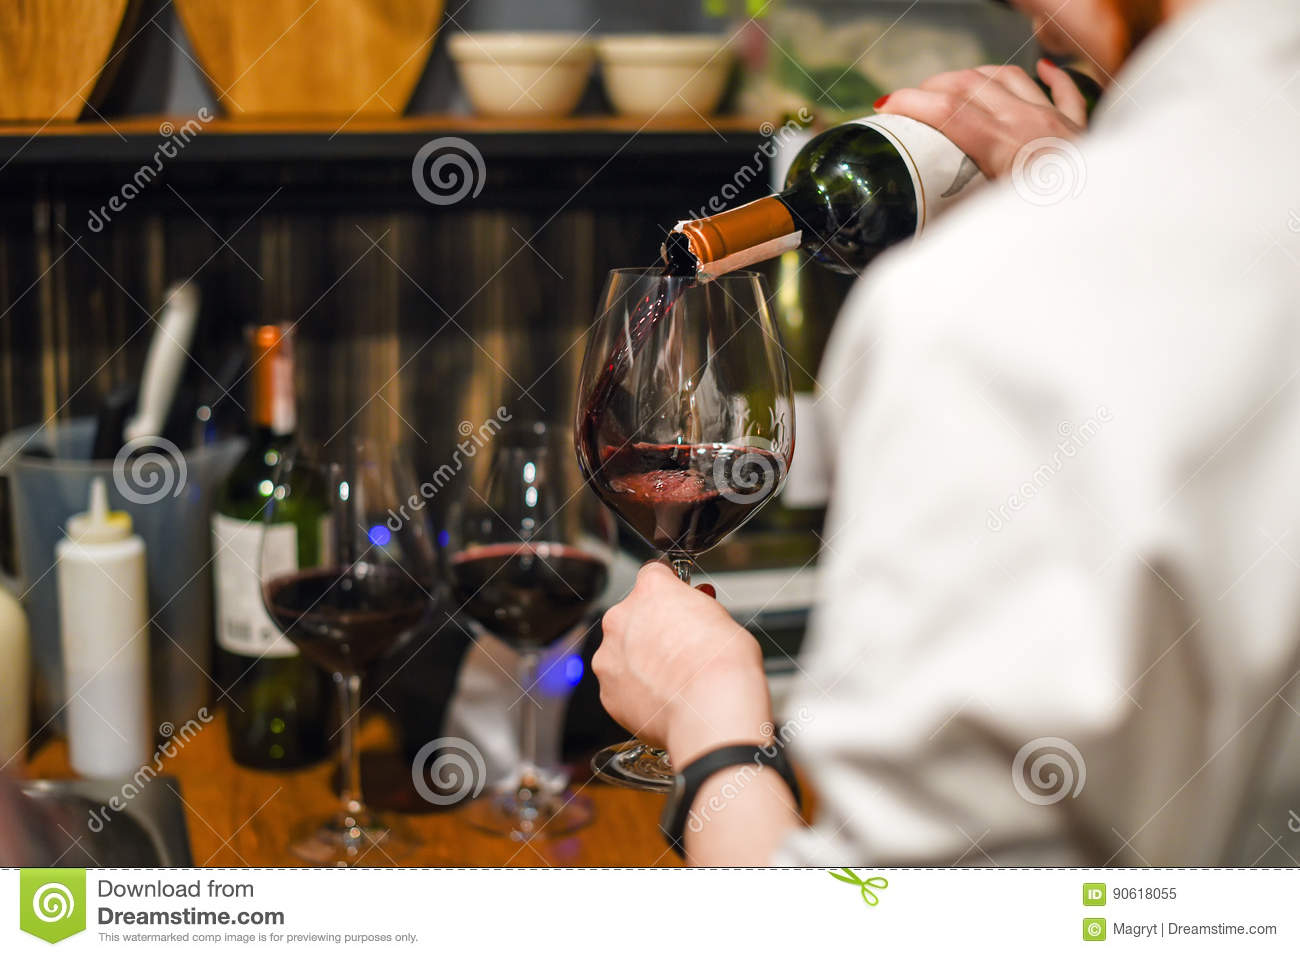 Waiter pouring wine. Skillful sommelier pouring red wine into glass. Woman holding bottle and wineglass standing in